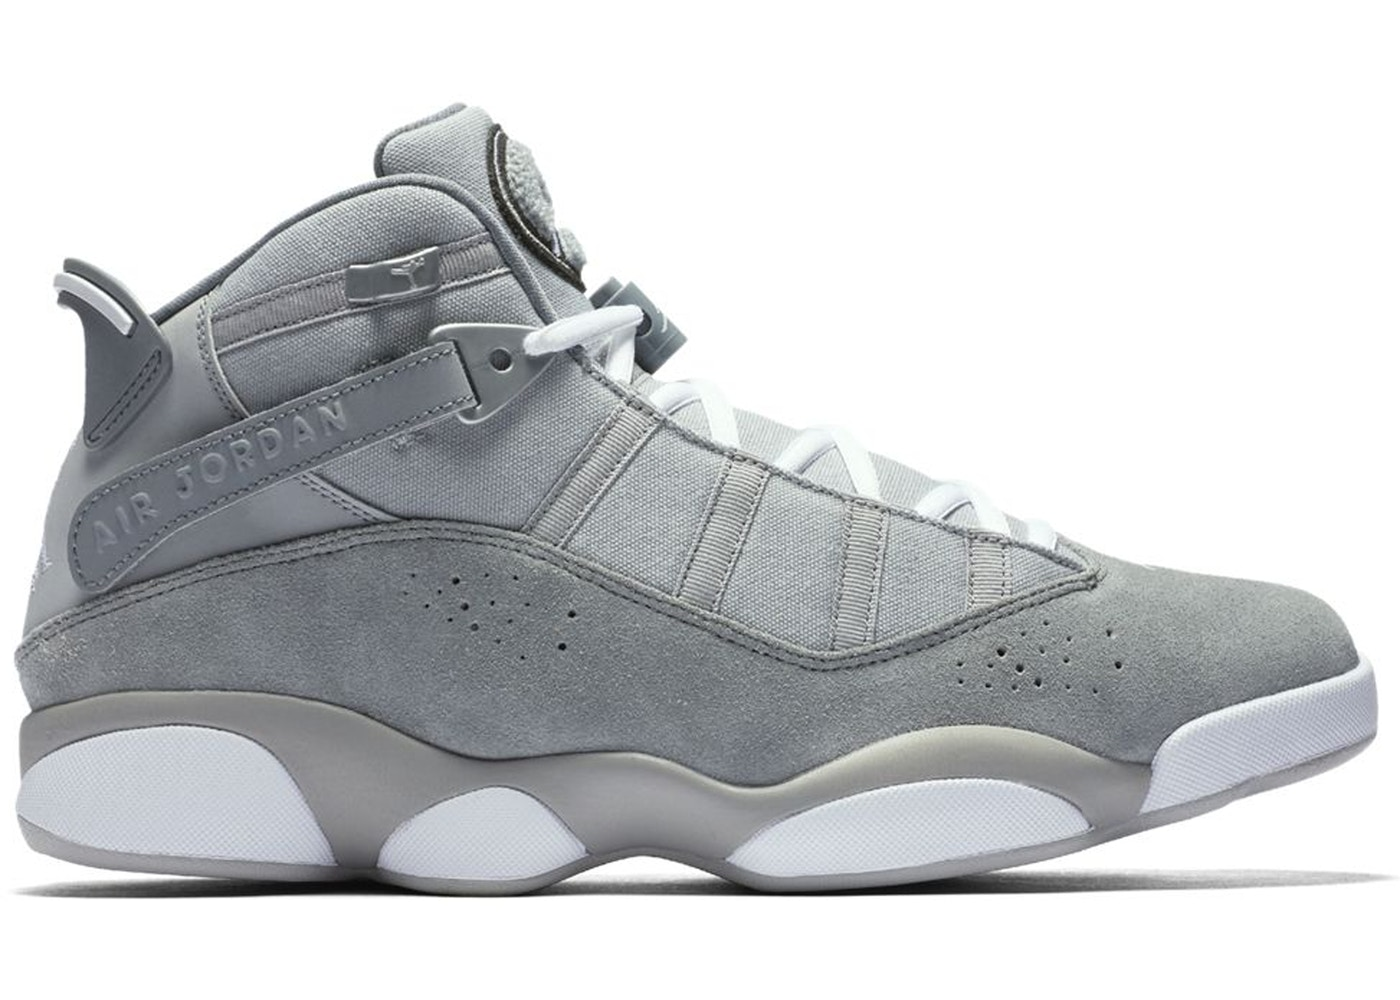 016c4003381293 Jordan 6 Rings Cool Grey - 322992-014